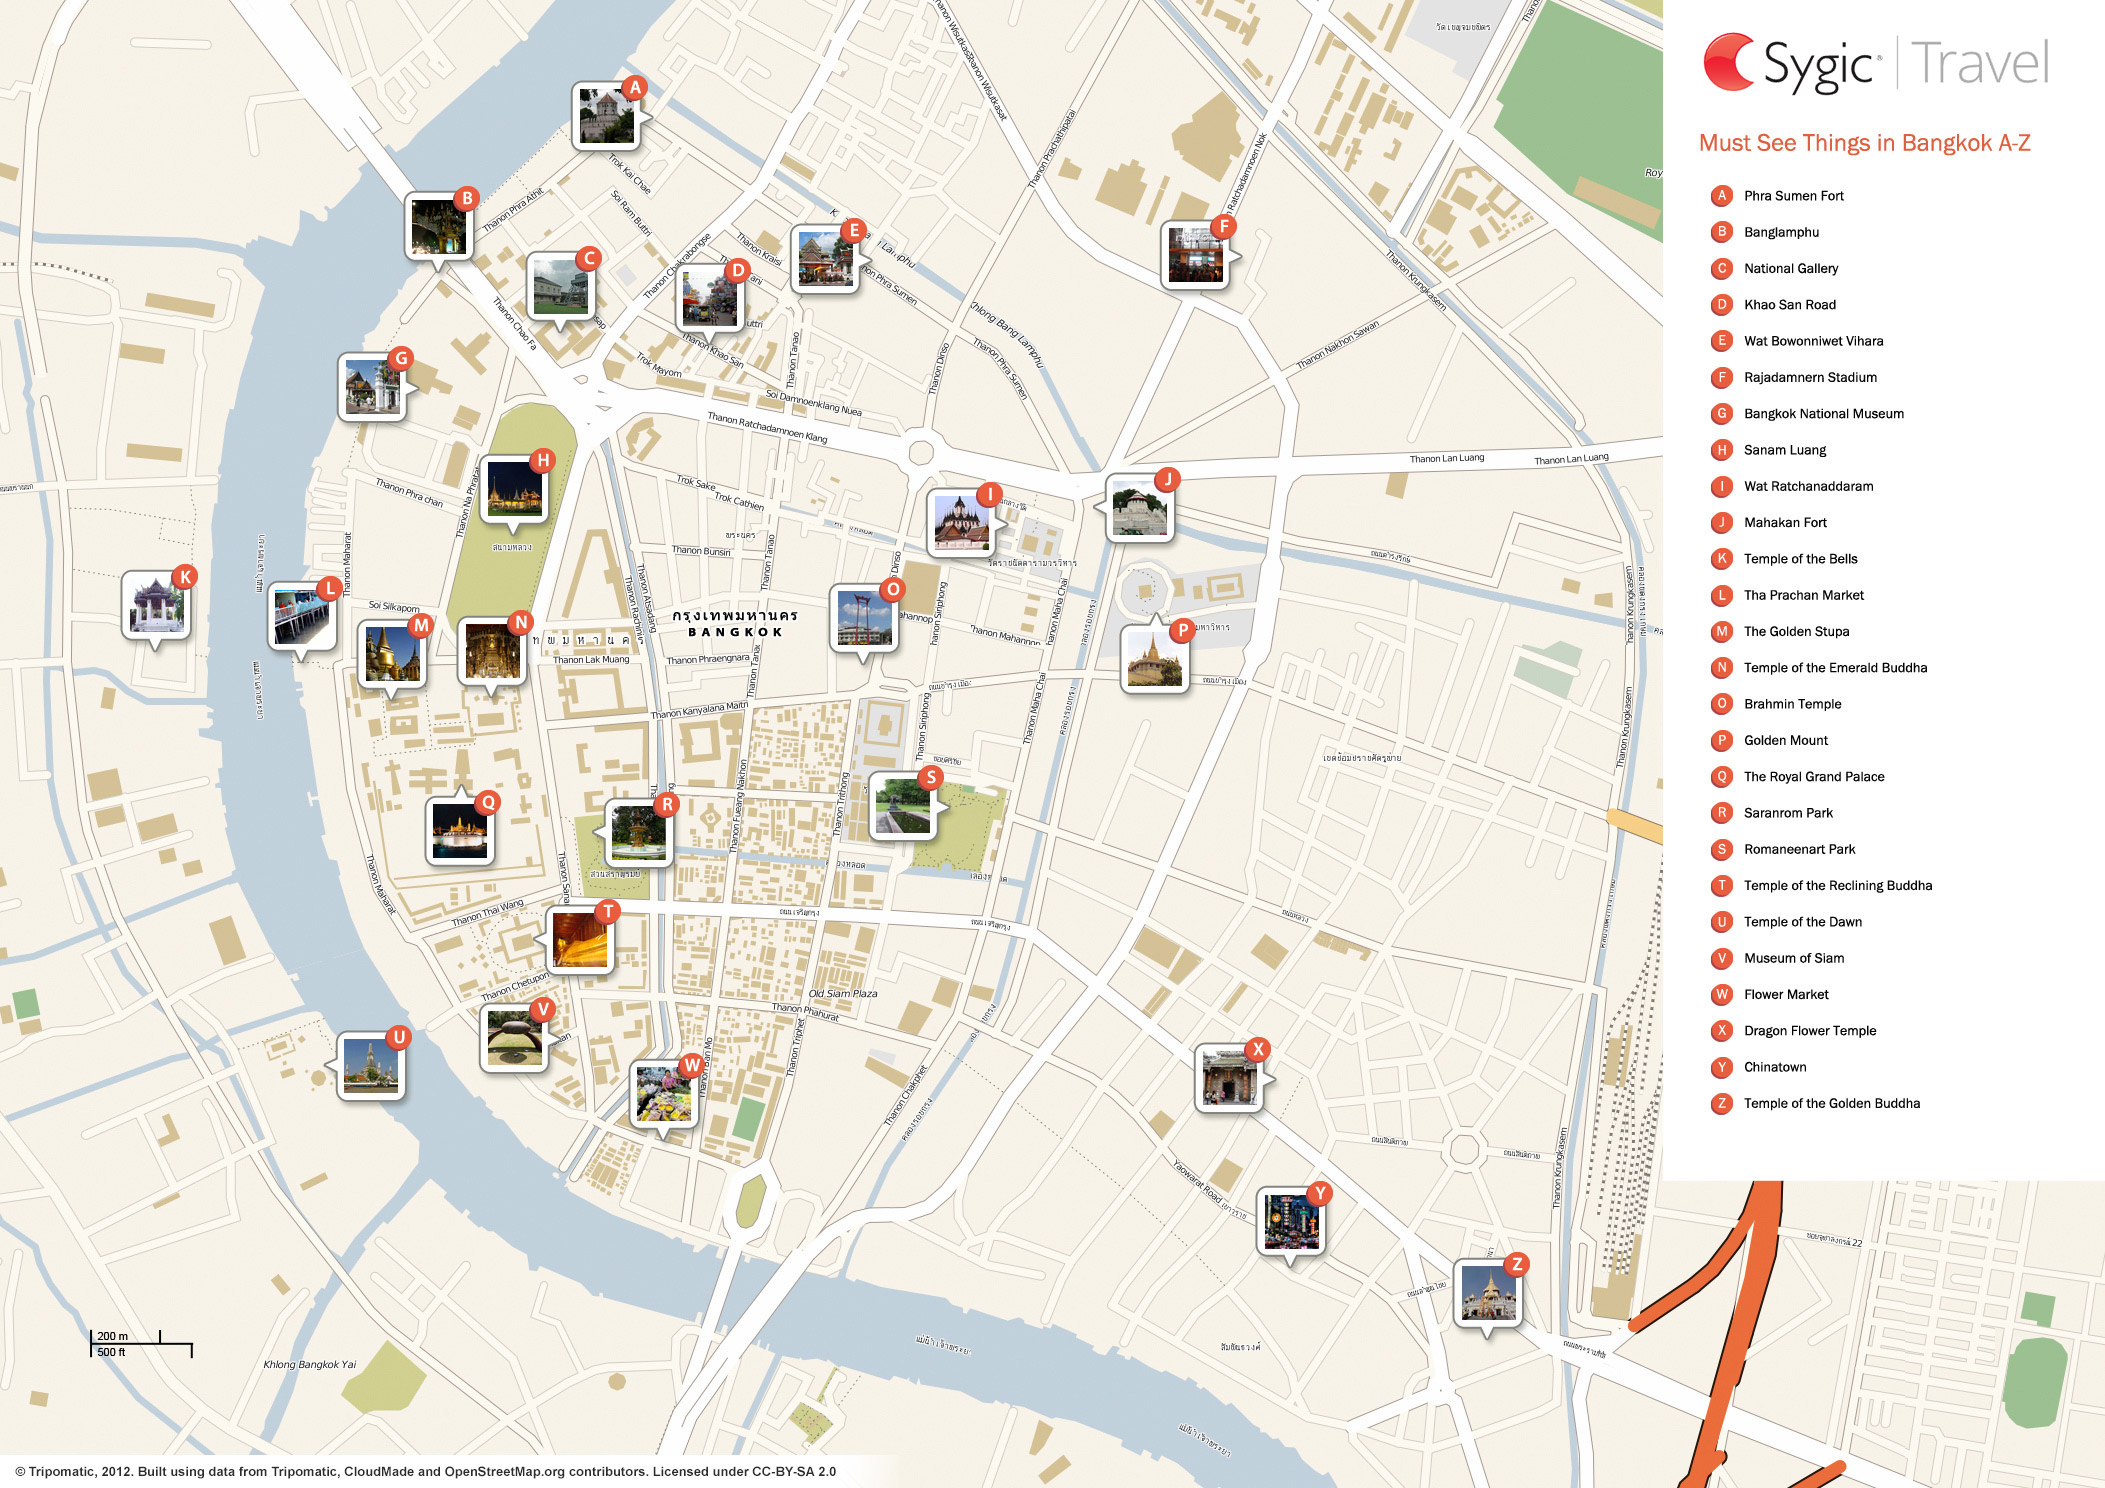 Complete Tourist Attractions Map of Bangkok Thailand – Thailand Tourist Attractions Map